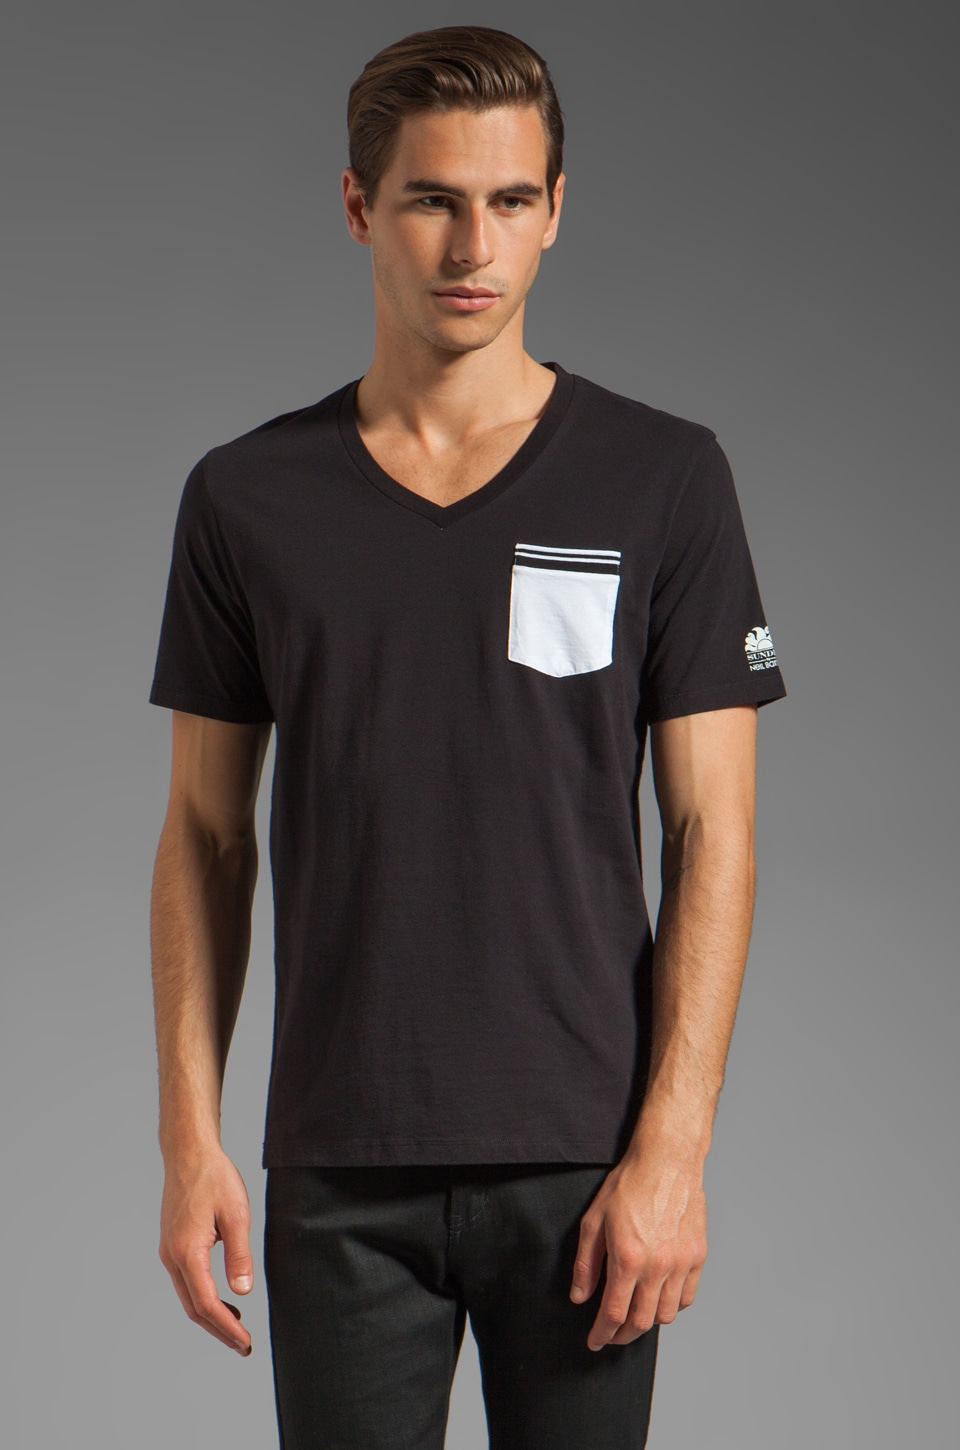 Sundek by Neil Barrett Fluo Package T-Shirt in Black